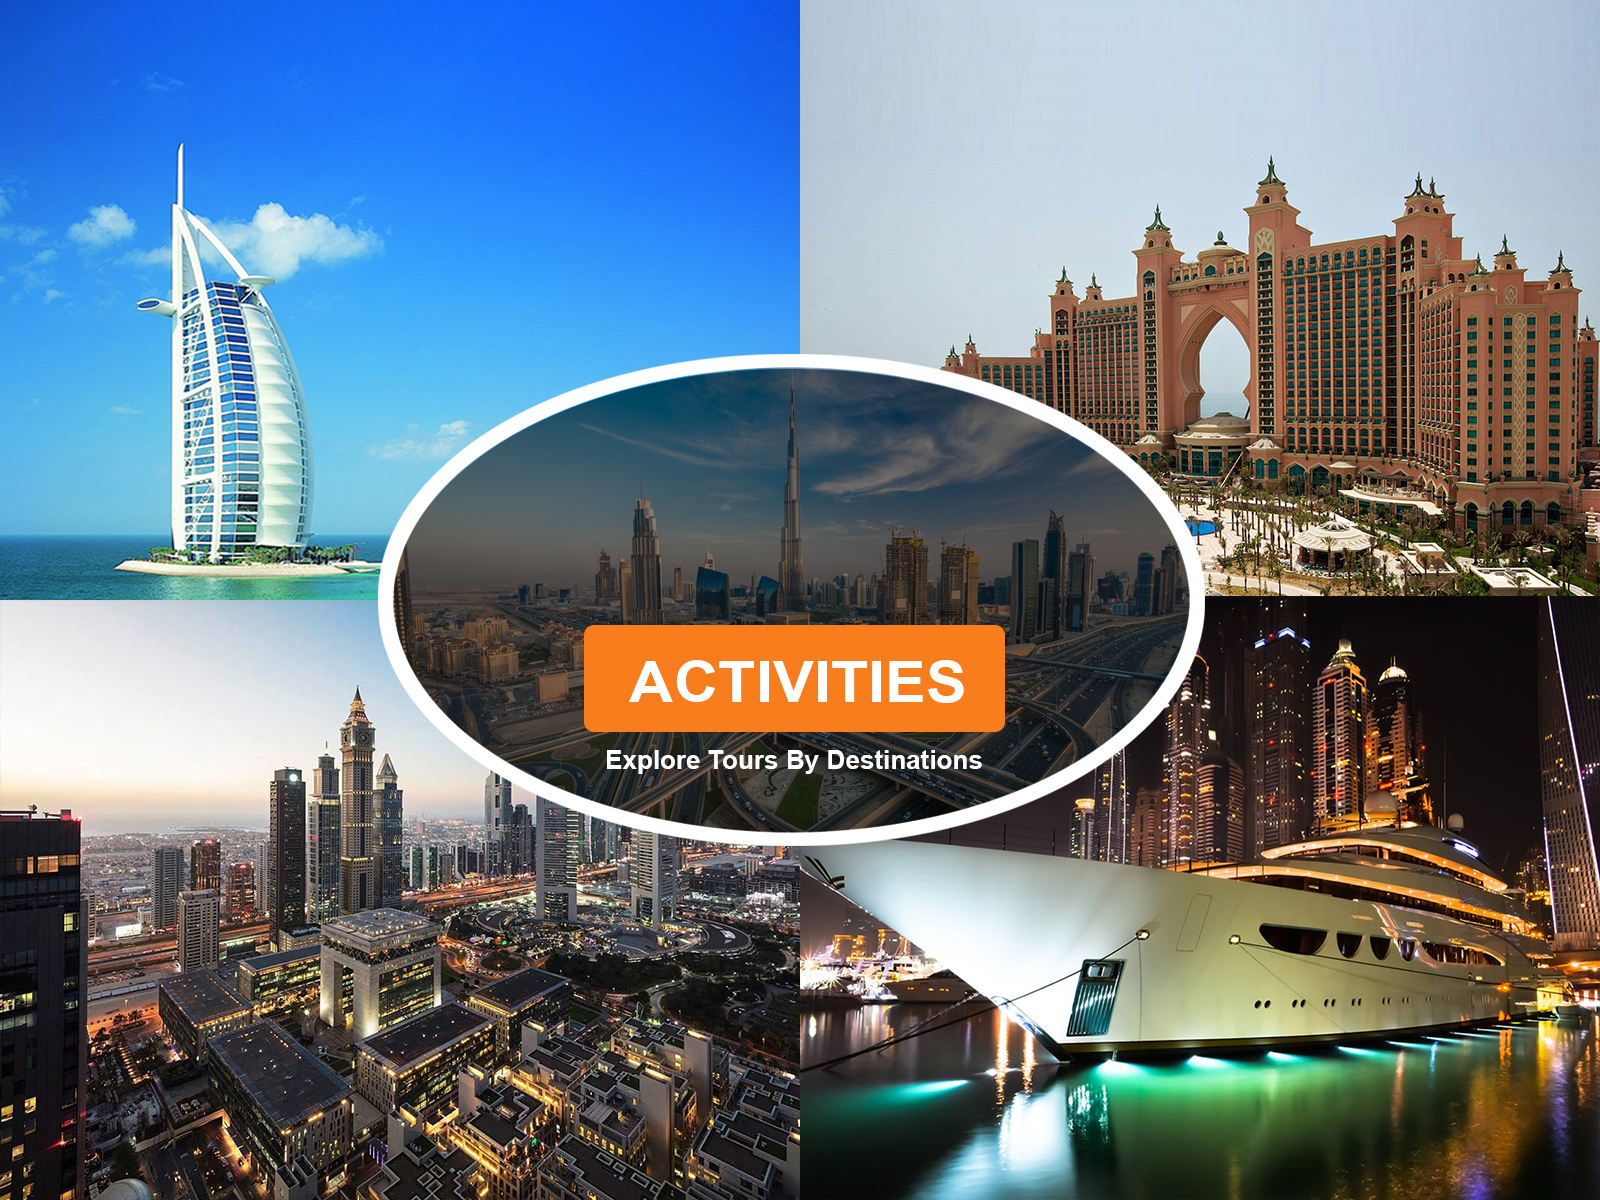 Activities Adventure Trip Tourism